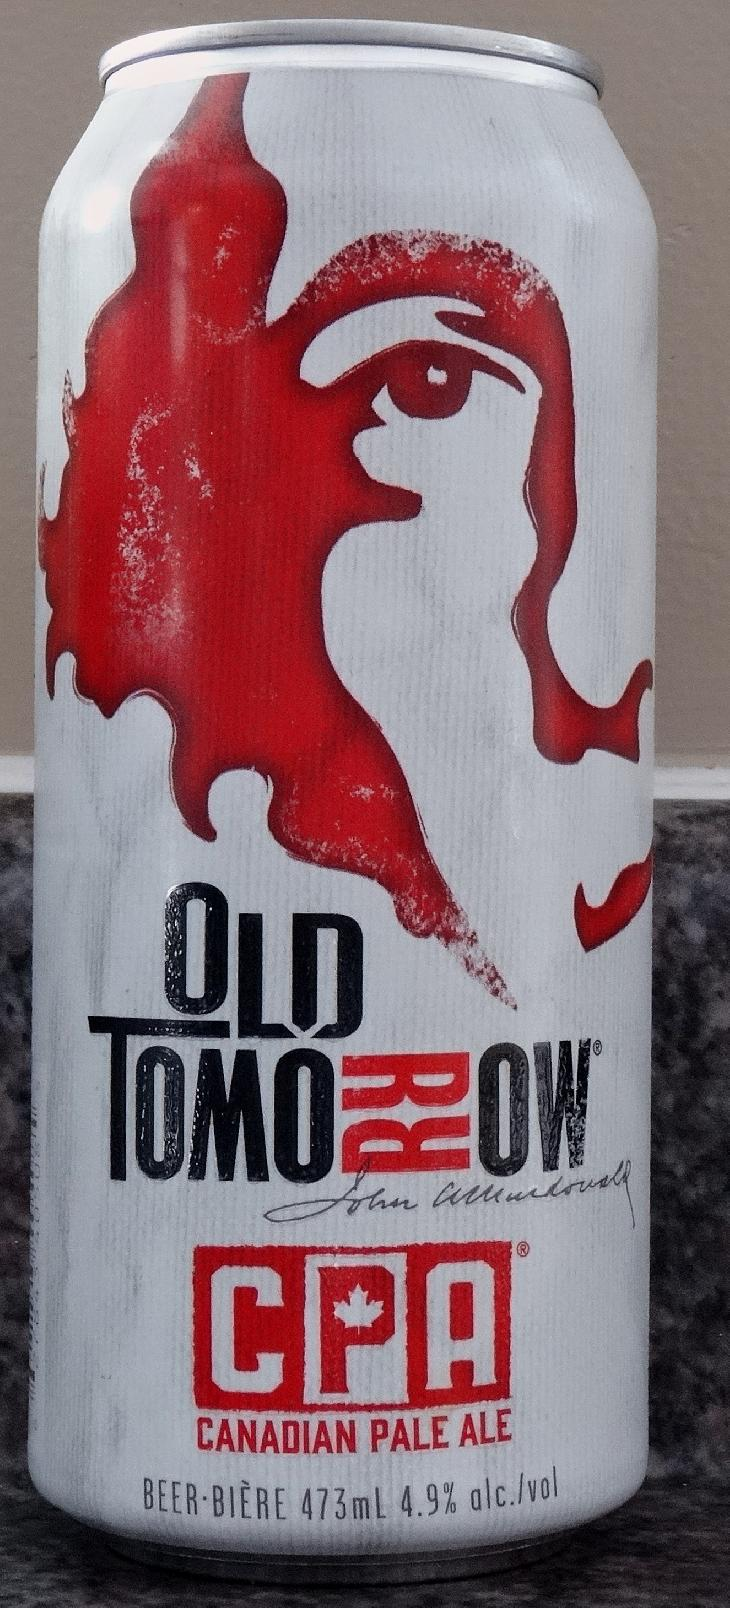 The front of Canadian Pale Ale beer can, by Old Tomorrow Beer.  This is the 2017 edition of the can.